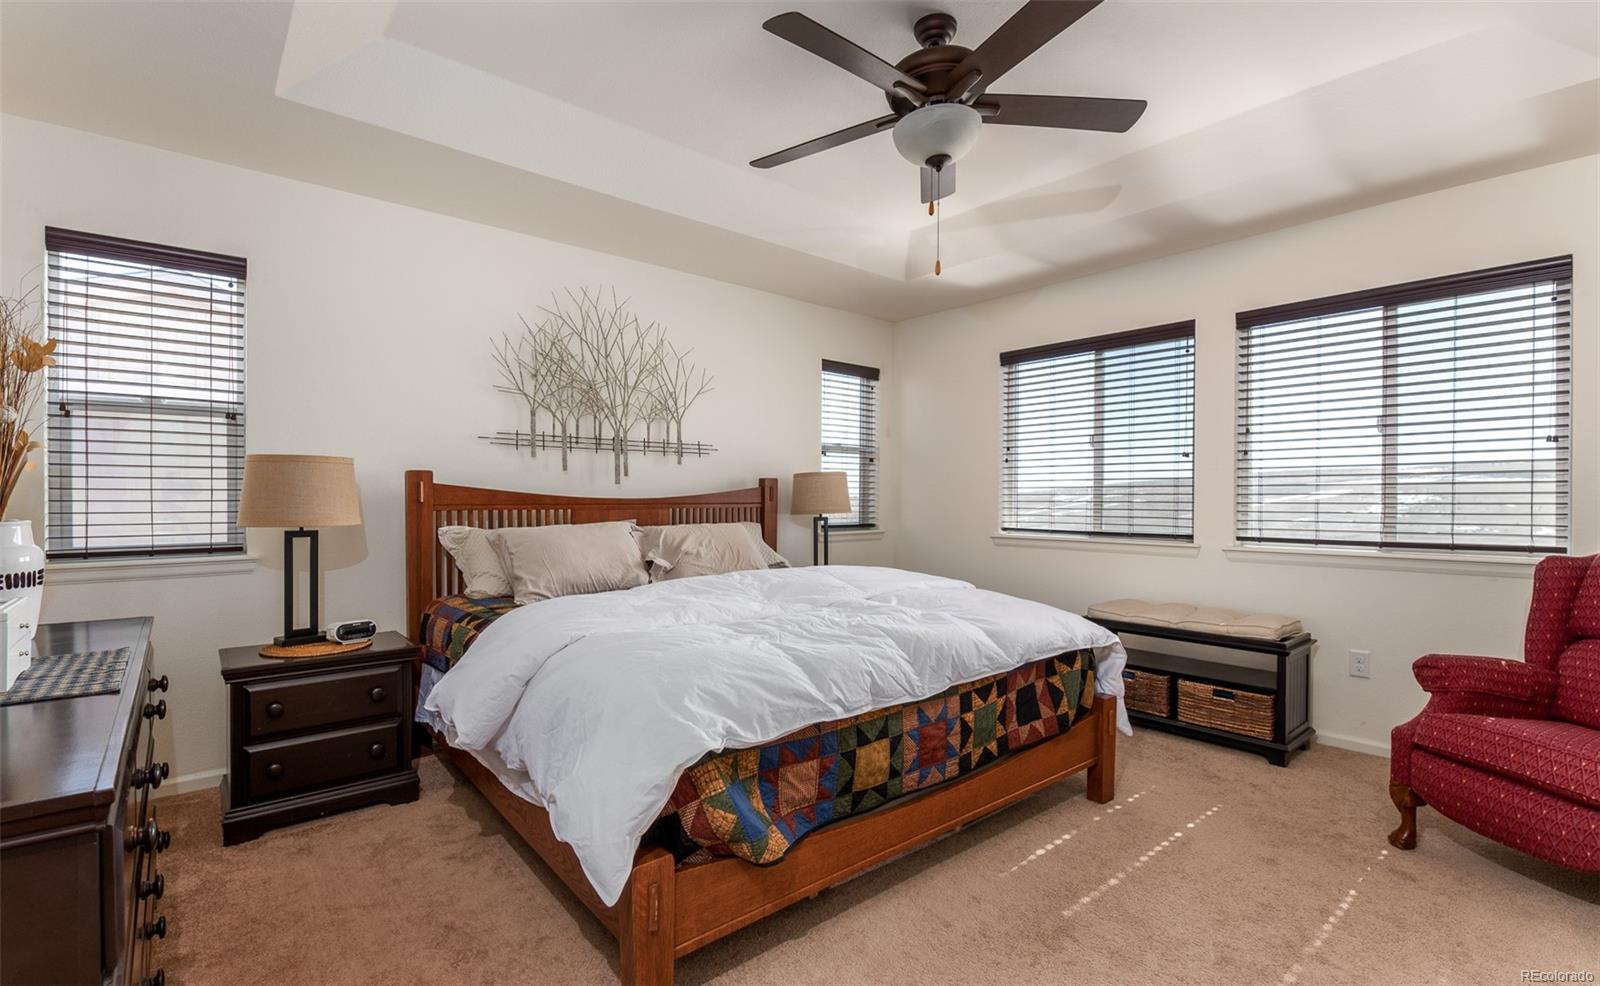 Enjoy the views from the spacious master bedroom